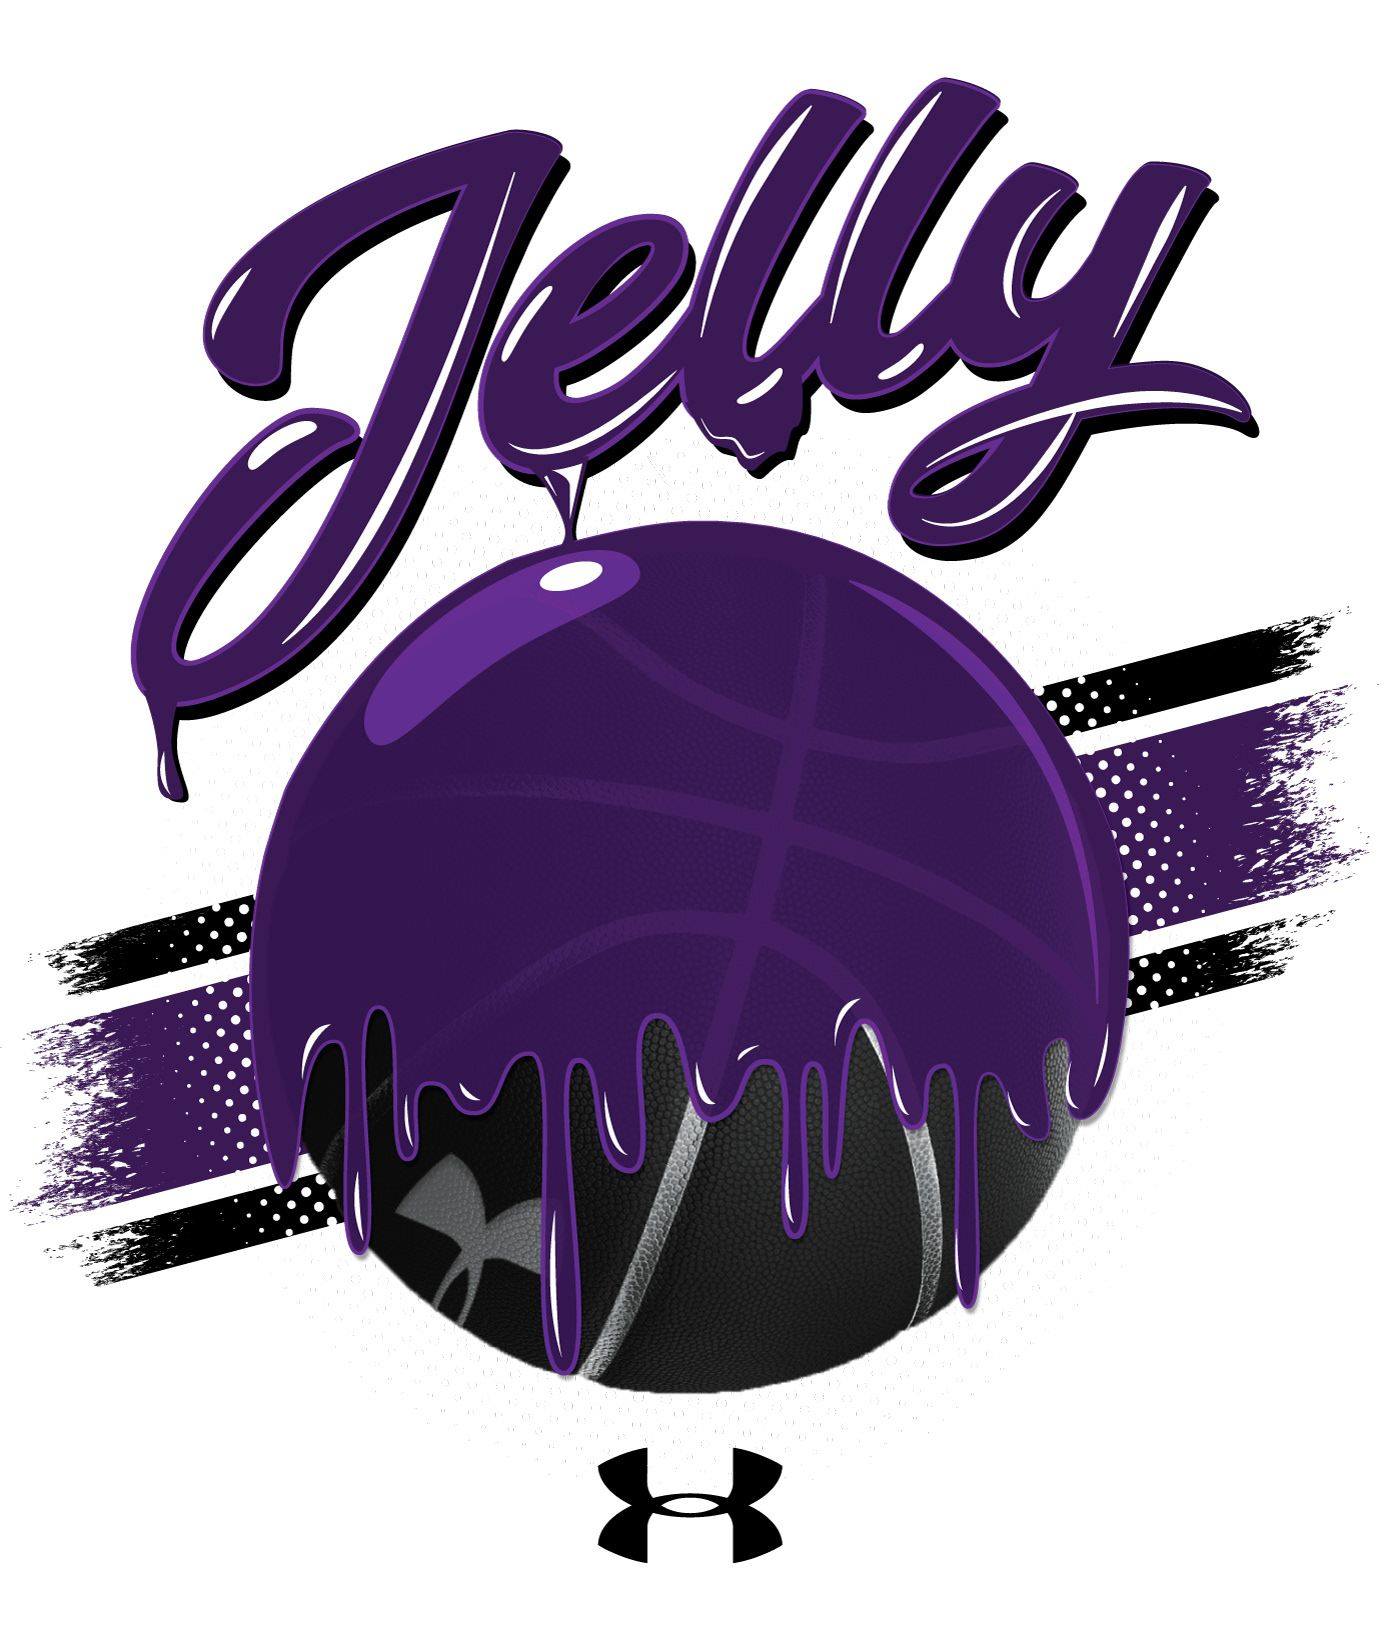 James Risher Under Armour Jelly Fam Tees Iphone Wallpaper Basketball Wallpapers Hd Nba Wallpapers